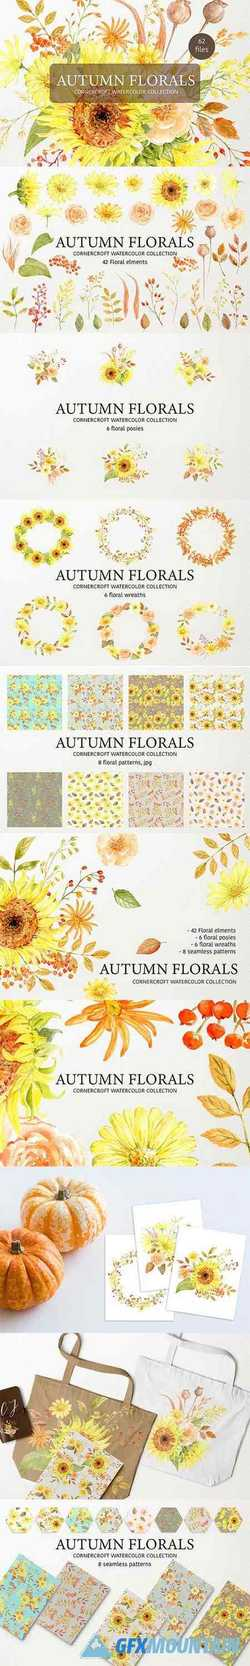 AUTUMN FLORAL COLLECTION - 2840864